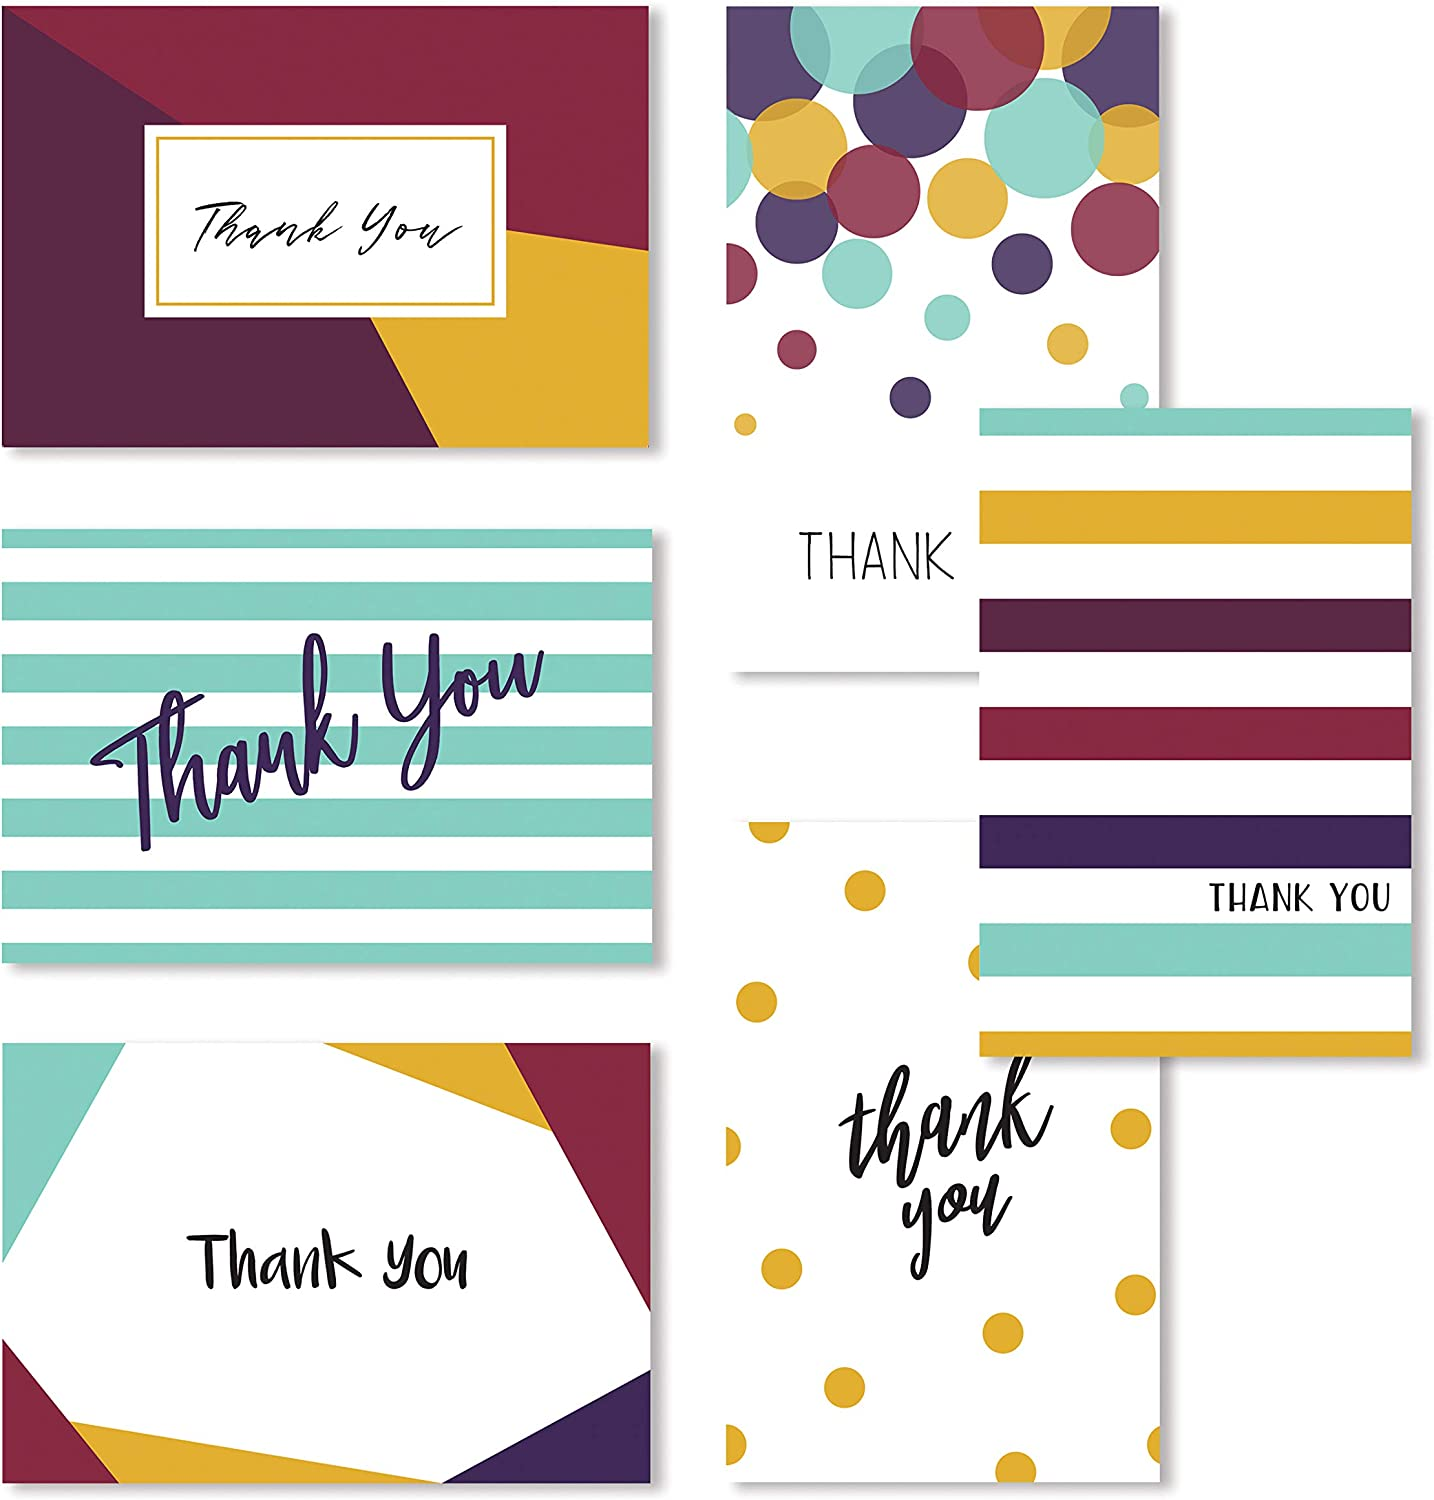 Cavepop 36 Pack Card Box Assortment of Thank You Cards, Blank Cards for a Greeting, Notes, Gifts with Envelopes for Wedding, Baby Shower, Bridal Shower